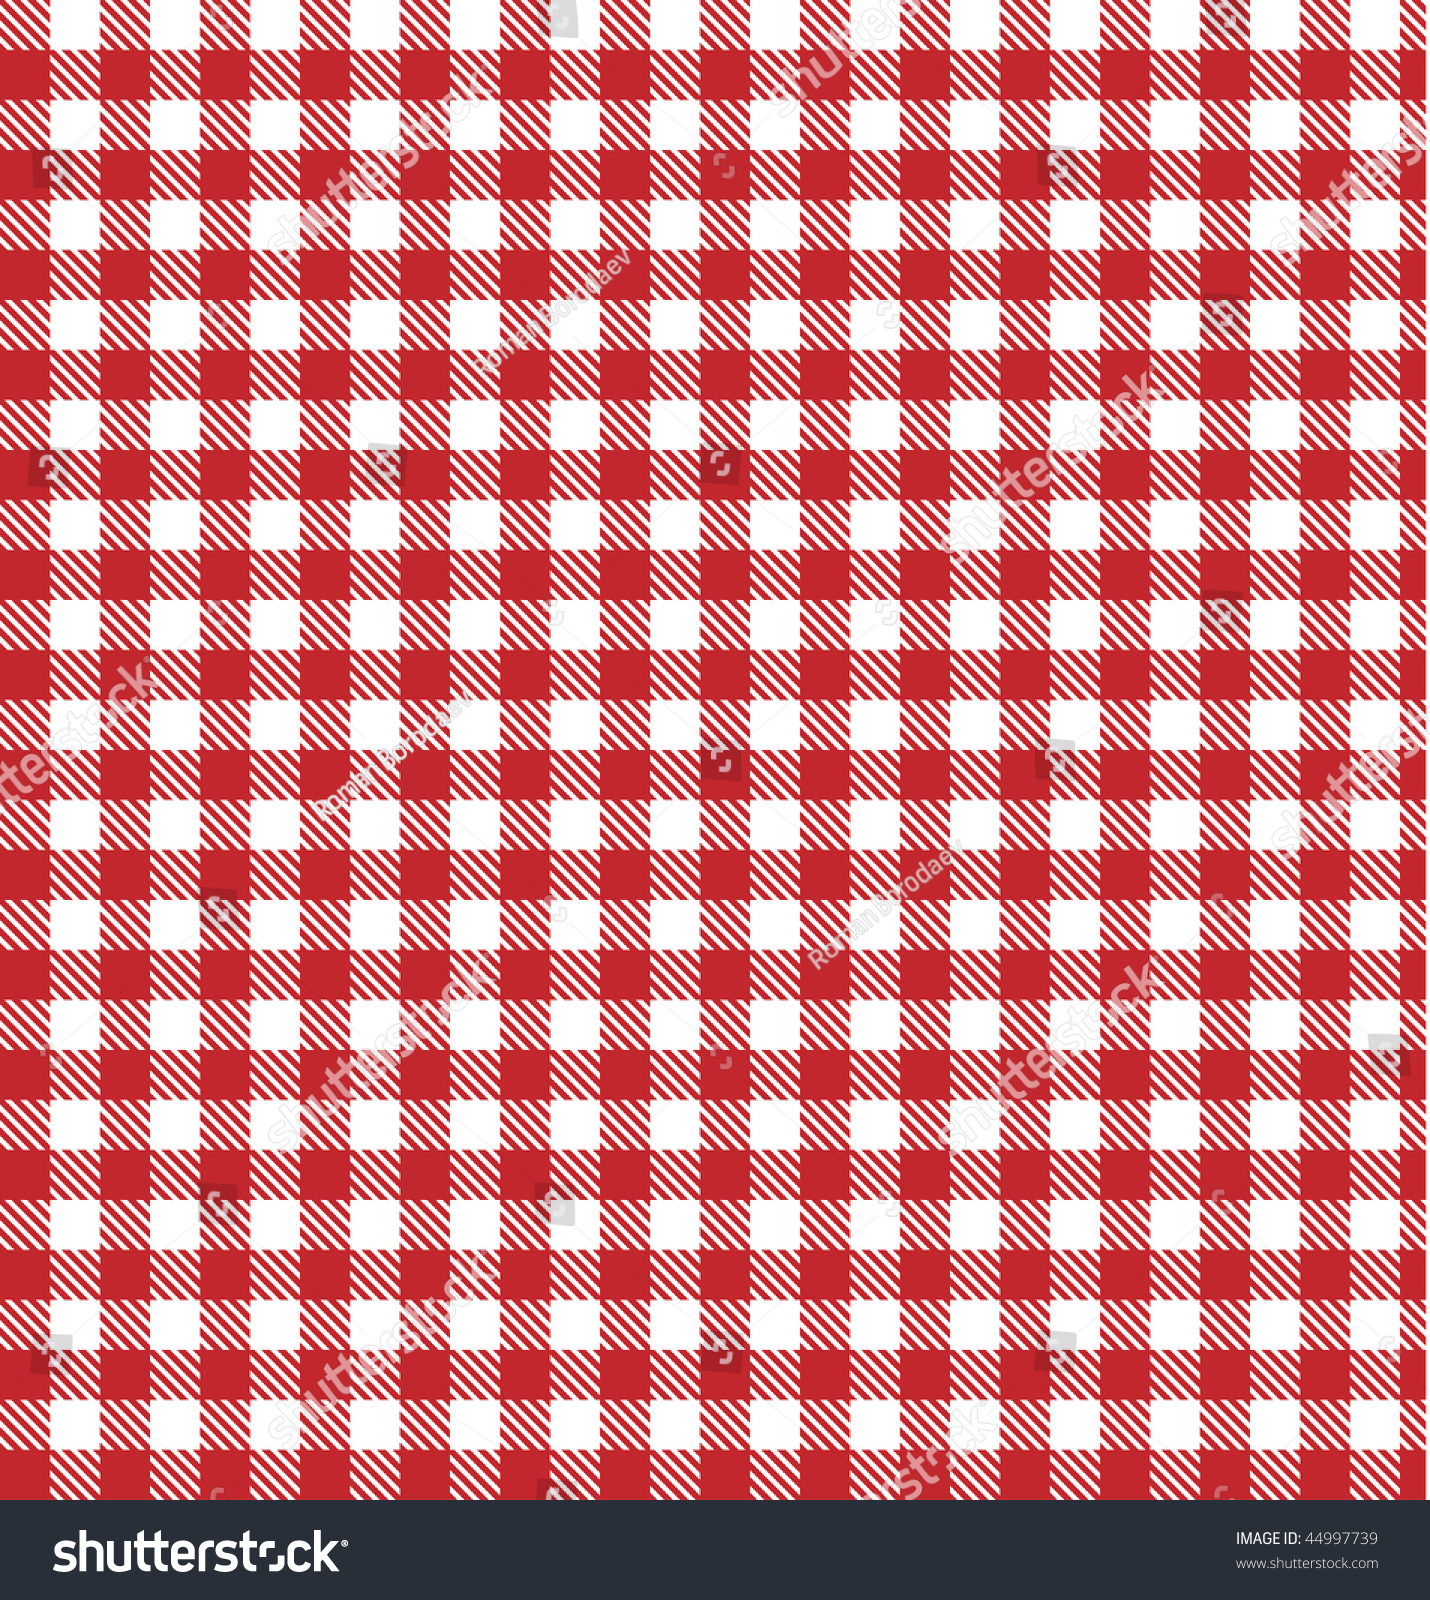 Red Picnic Table Cloth, Plaid, Gingham, Blanket Vector Background.  Tablecloth Check Pattern